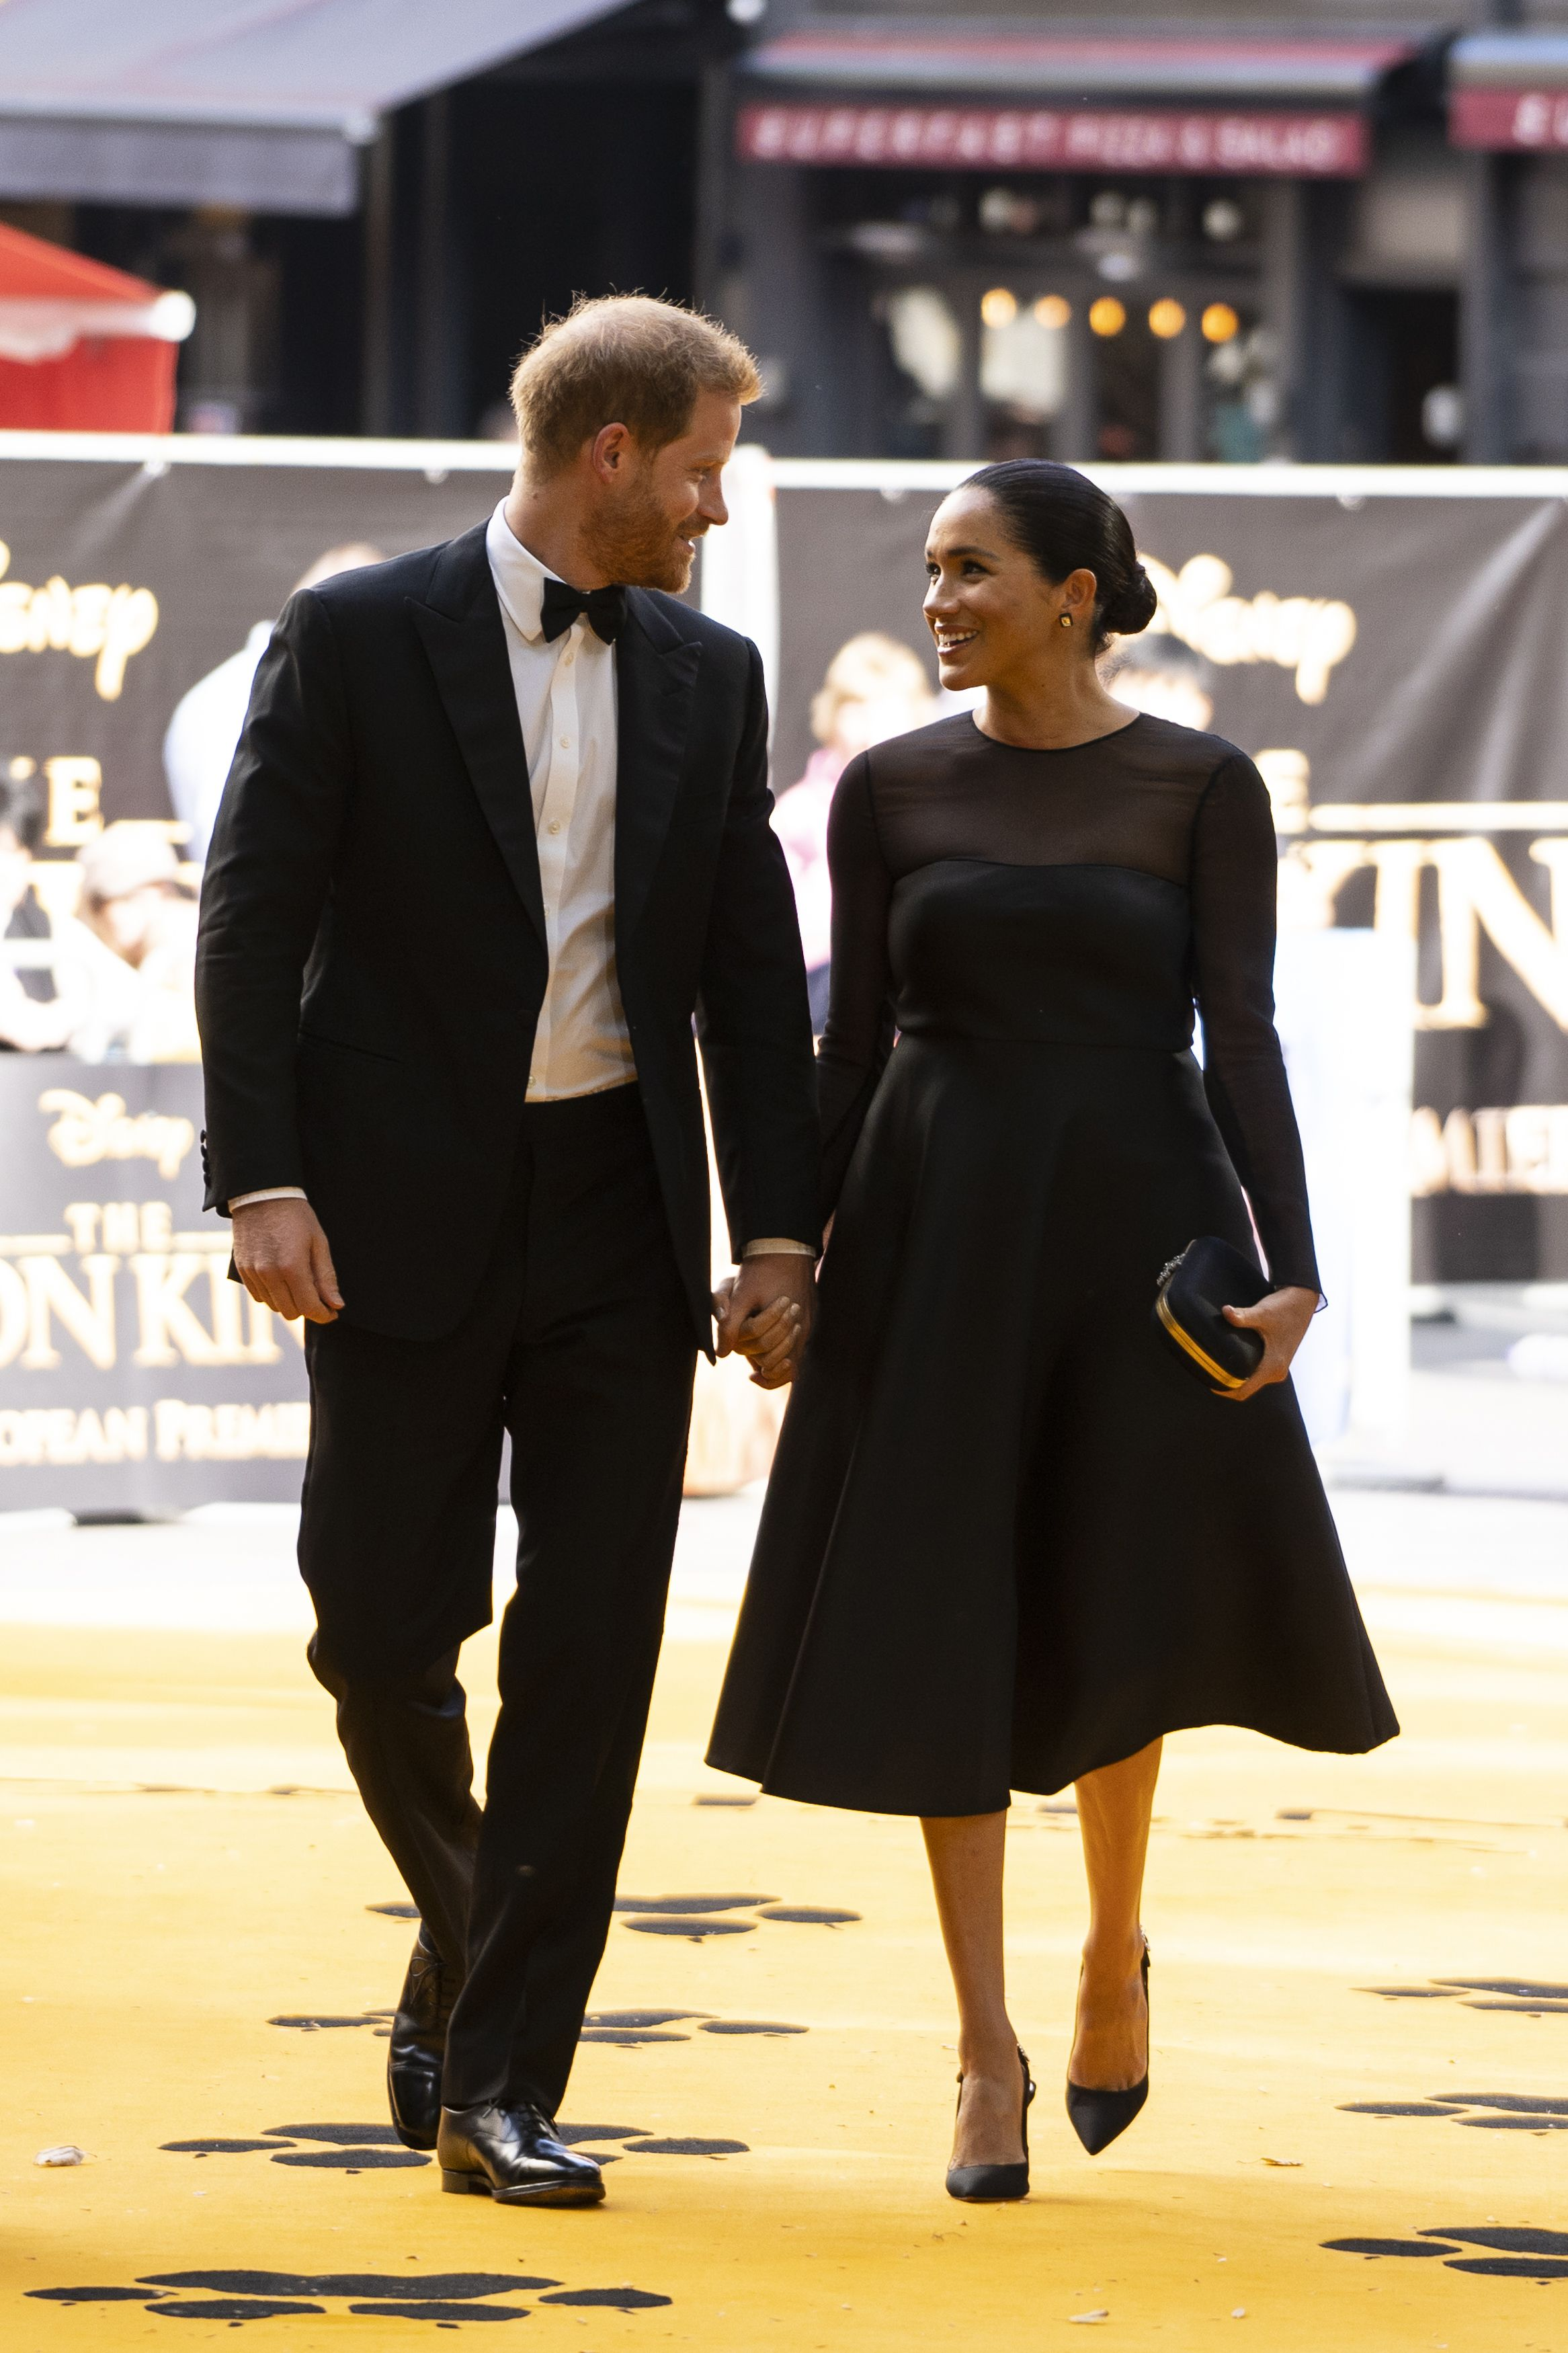 Britain's Prince Harry, Duke of Sussex (L) and Britain's Meghan, Duchess of Sussex (R) arrive to attend the European premiere of the film The Lion King in London on July 14, 2019. (Photo by Niklas HALLE'N / POOL / AFP)        (Photo credit should read NIKLAS HALLE'N/AFP/Getty Images)